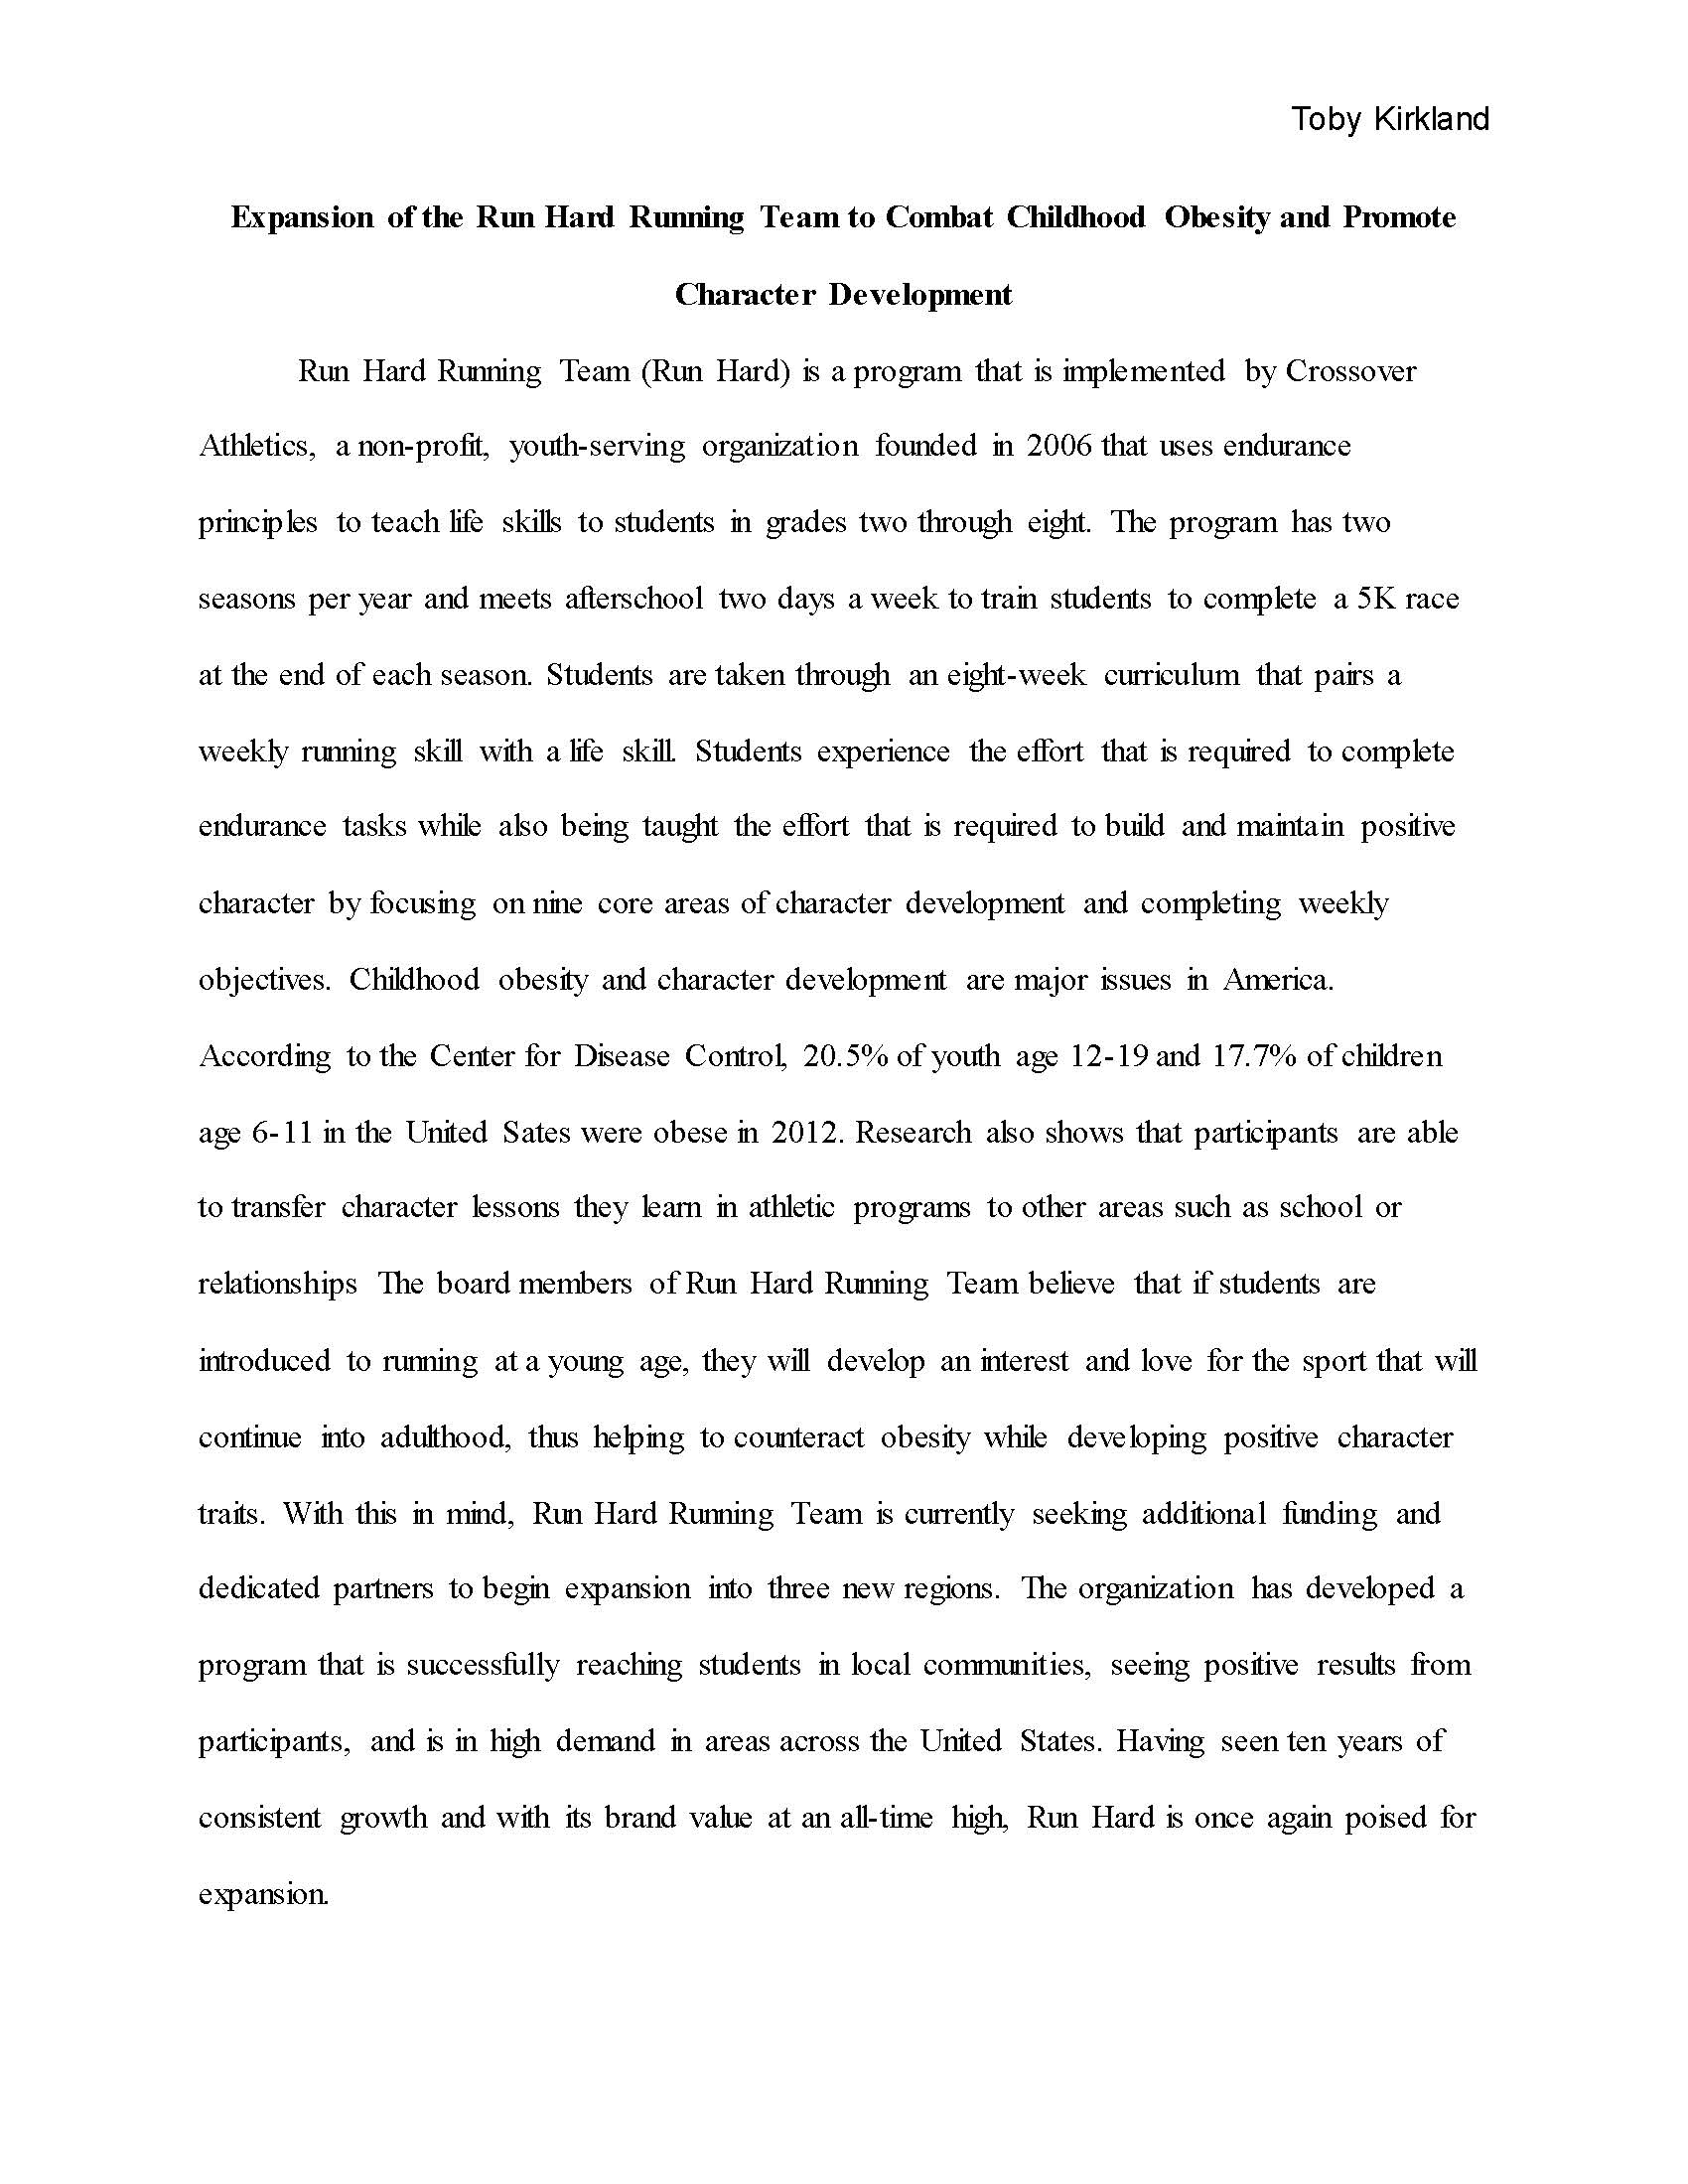 003 Childhood Obesity Research Paper Introduction Toby Kirkland Final Grant Proposal Page 01 Frightening Full